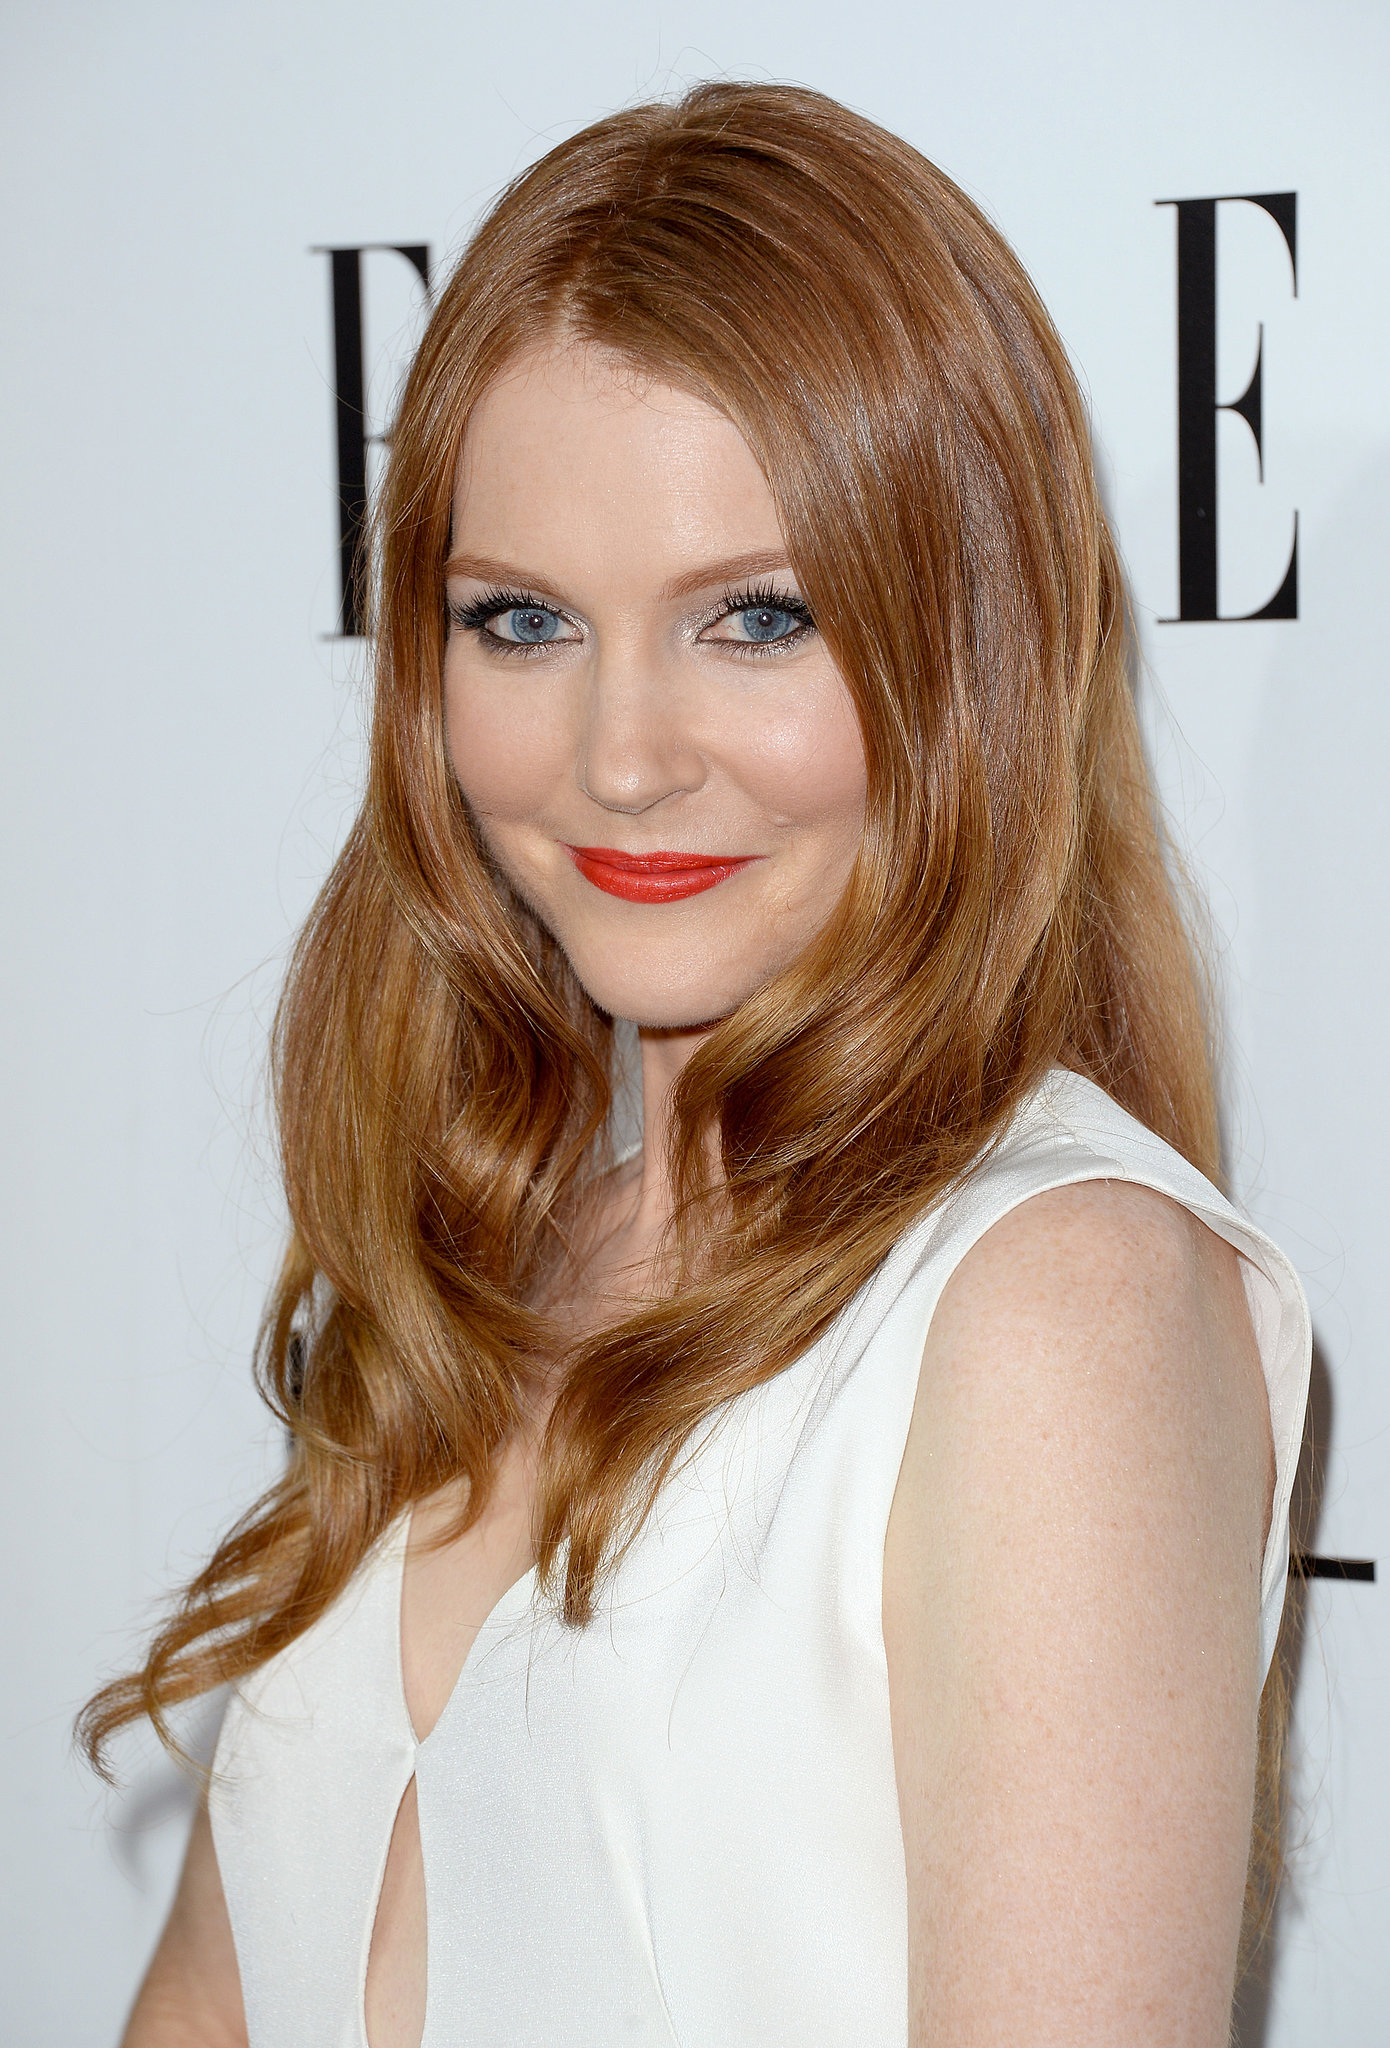 Darby Stanchfield was firing on all cylinders at the Women in Hollywood party with her red hair and red lipstick combo.